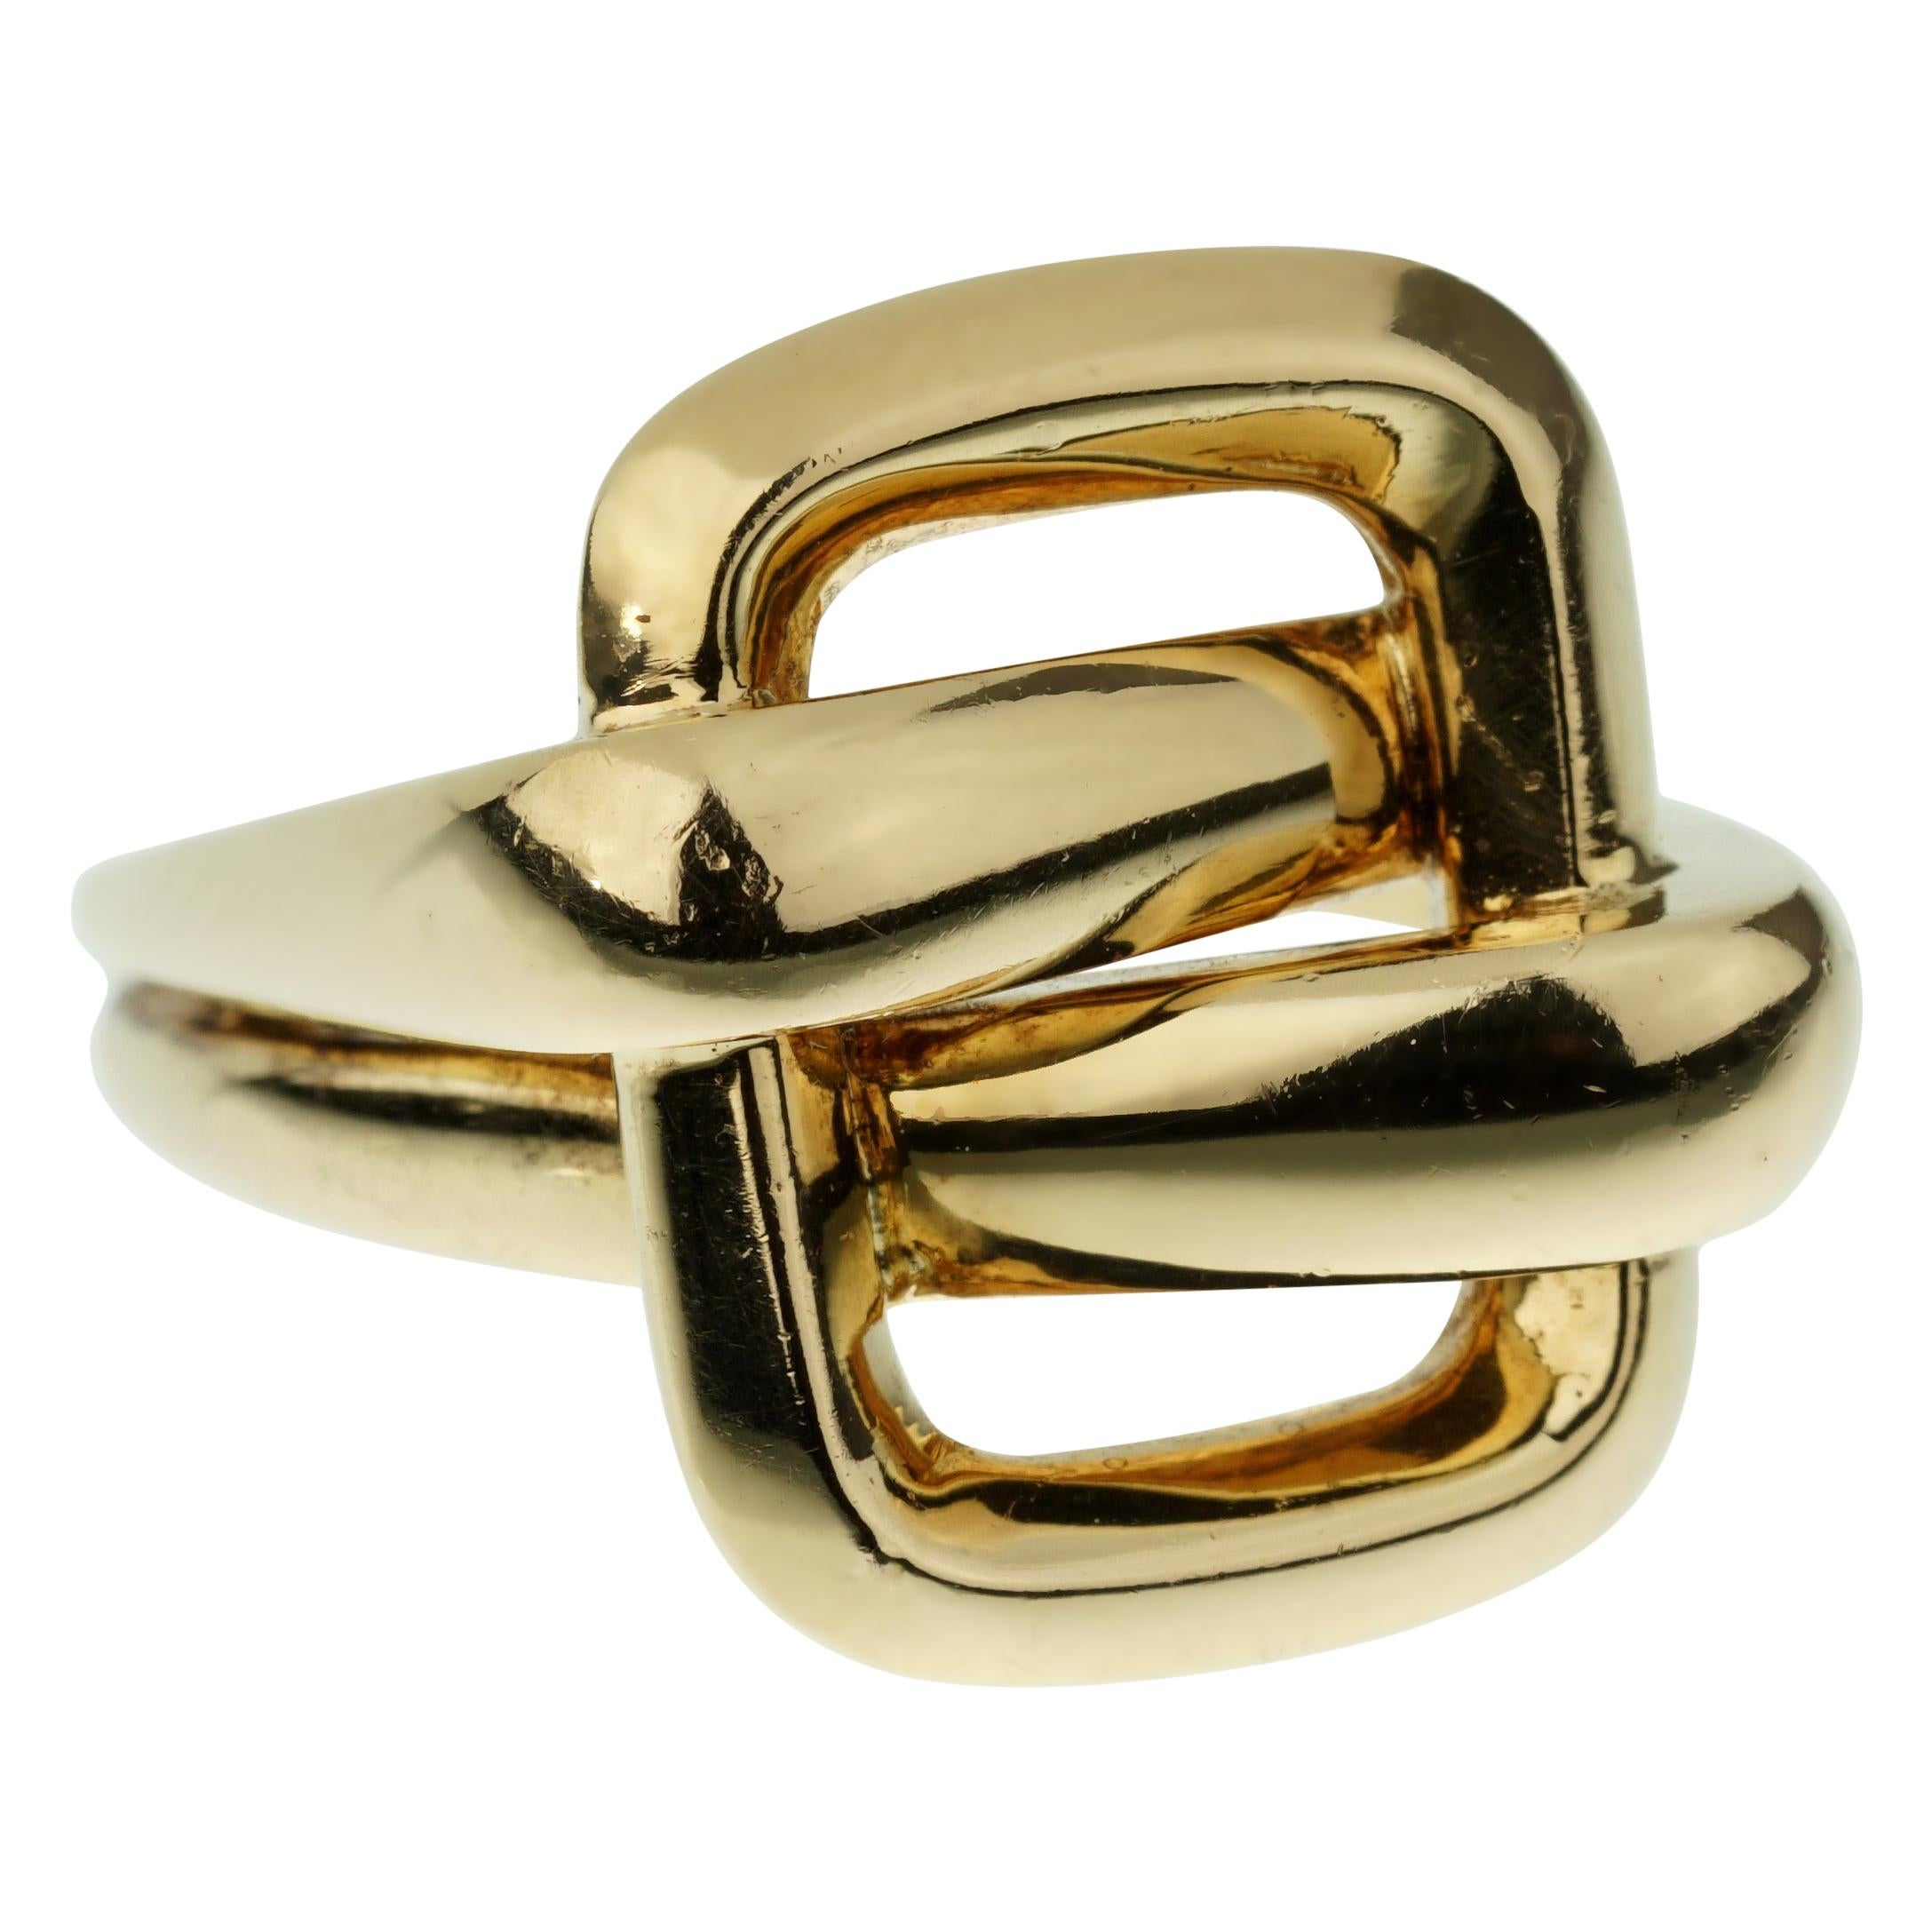 Van Cleef & Arpels Vintage Bypass Yellow Gold Ring